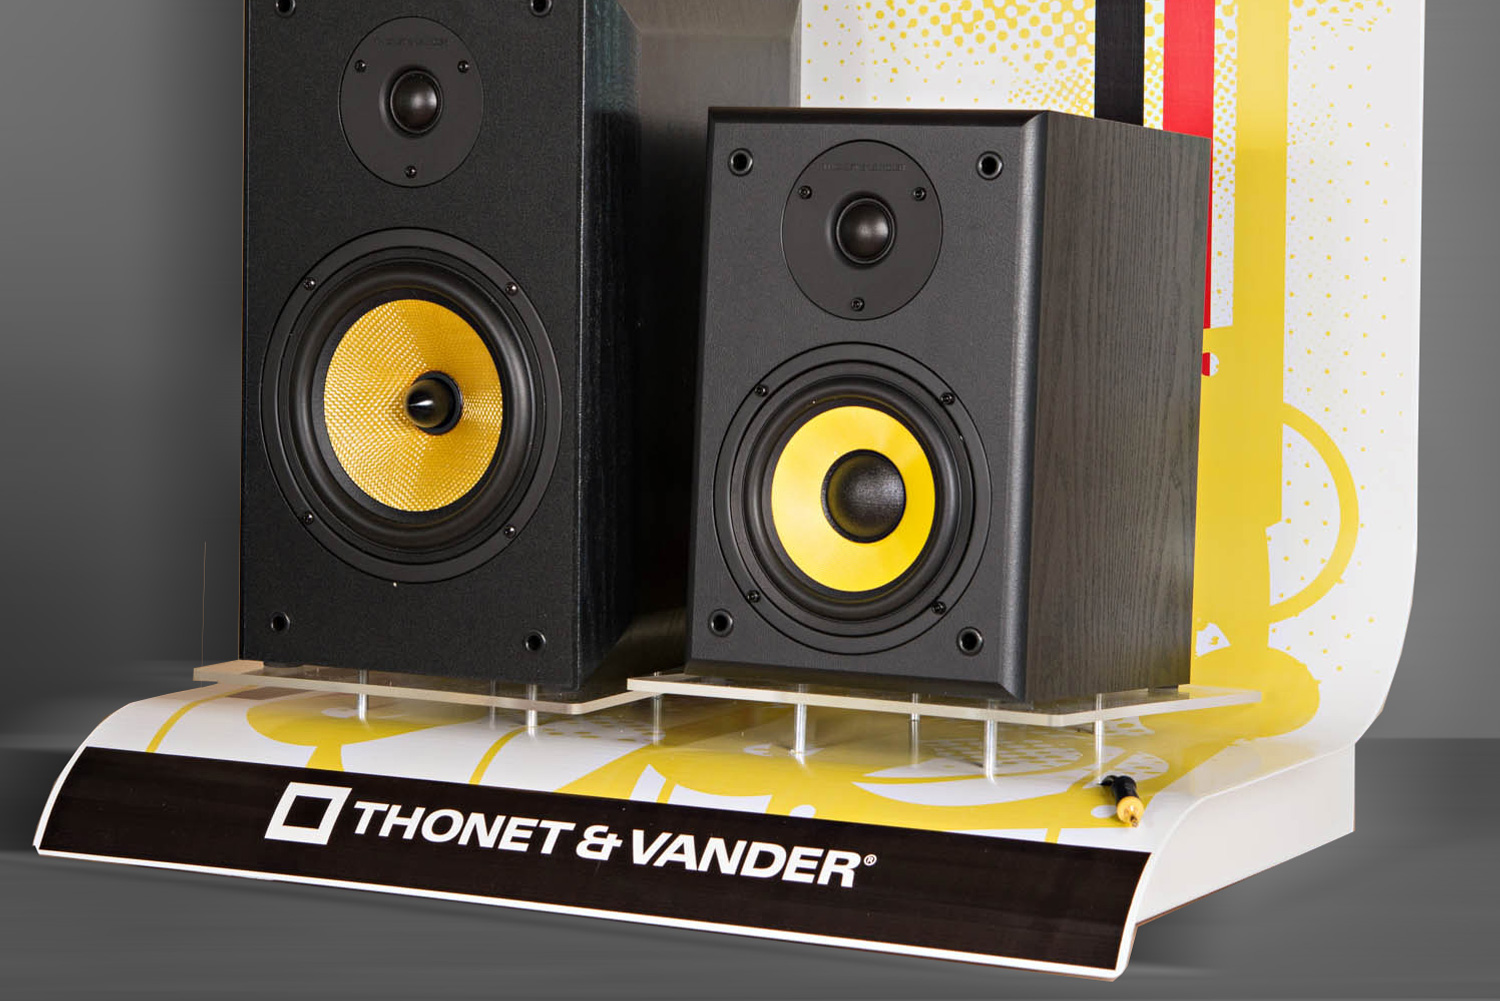 Custom POP Display for Thonet & Vander